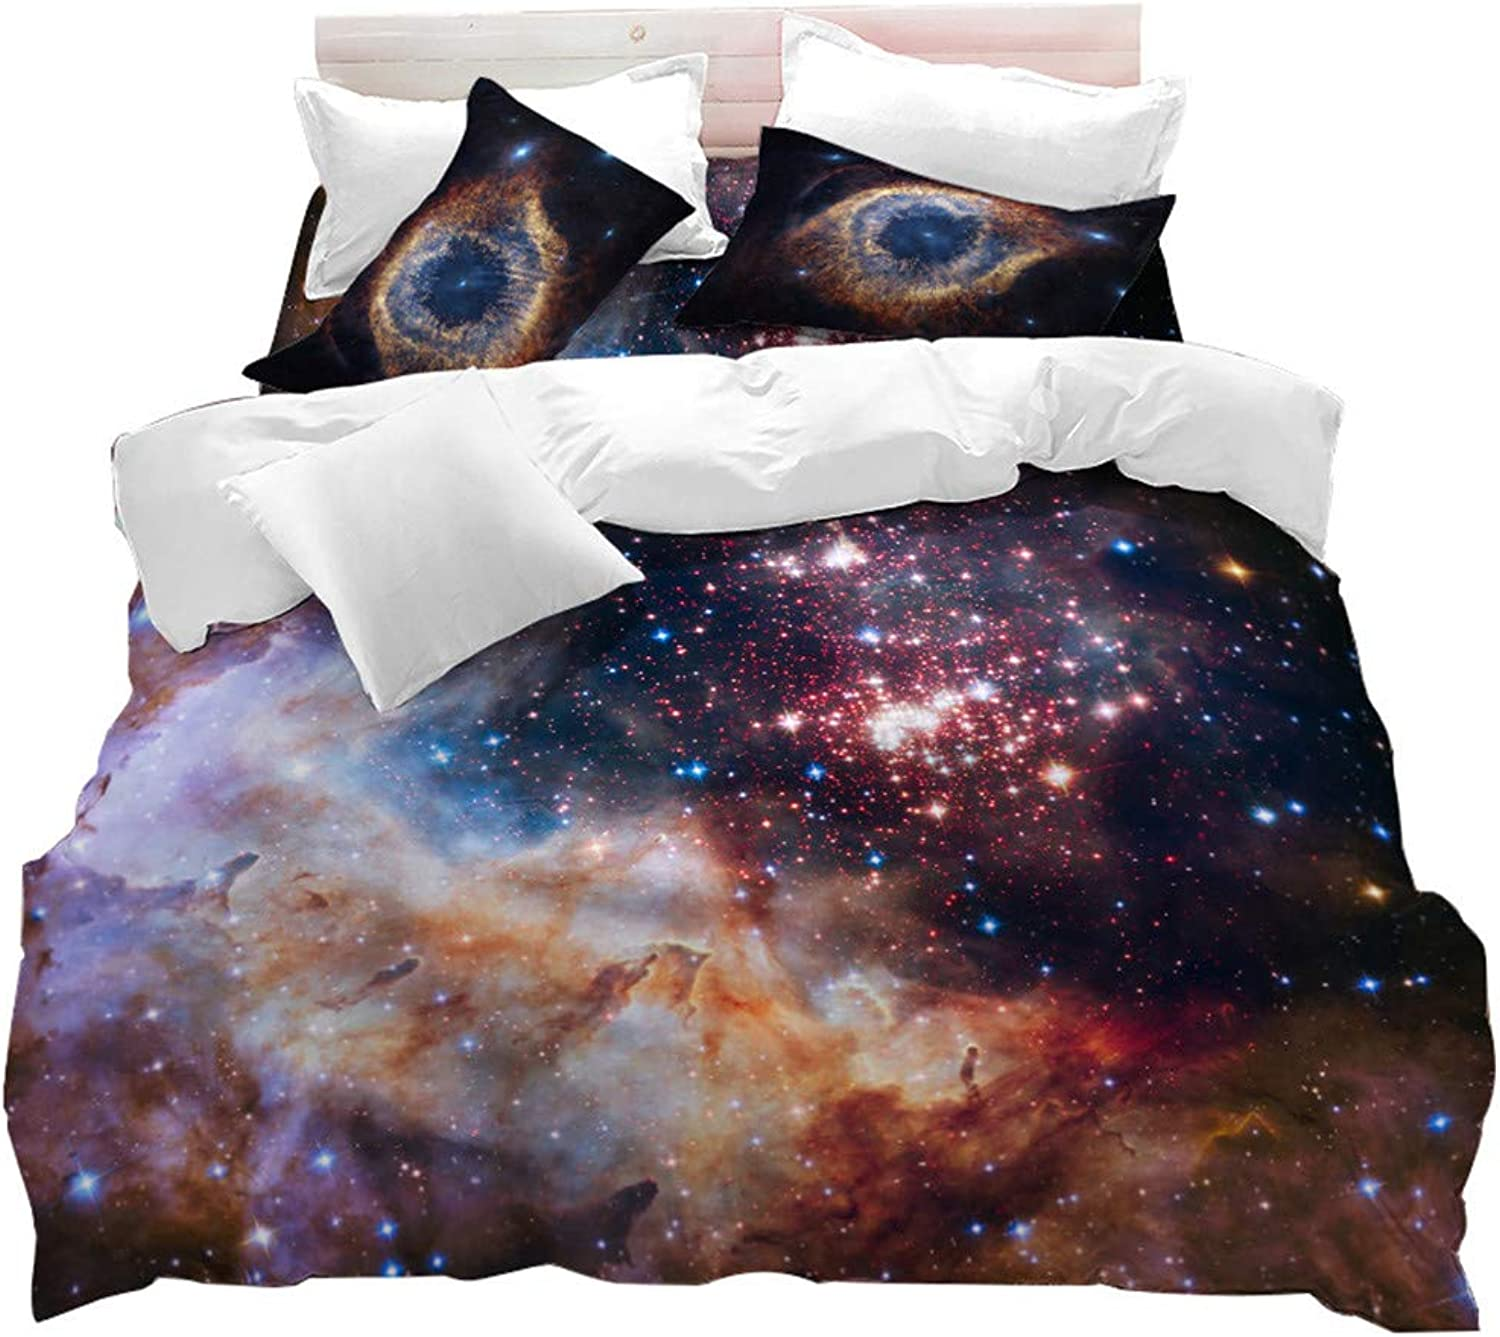 Duvet Cover Twin Size,3D Galaxy Quilt Cover Set,3 Pieces Cloud Stars Printed Bedding Set,for Decorations of Bedroom Kids Boys Astronomy Fans